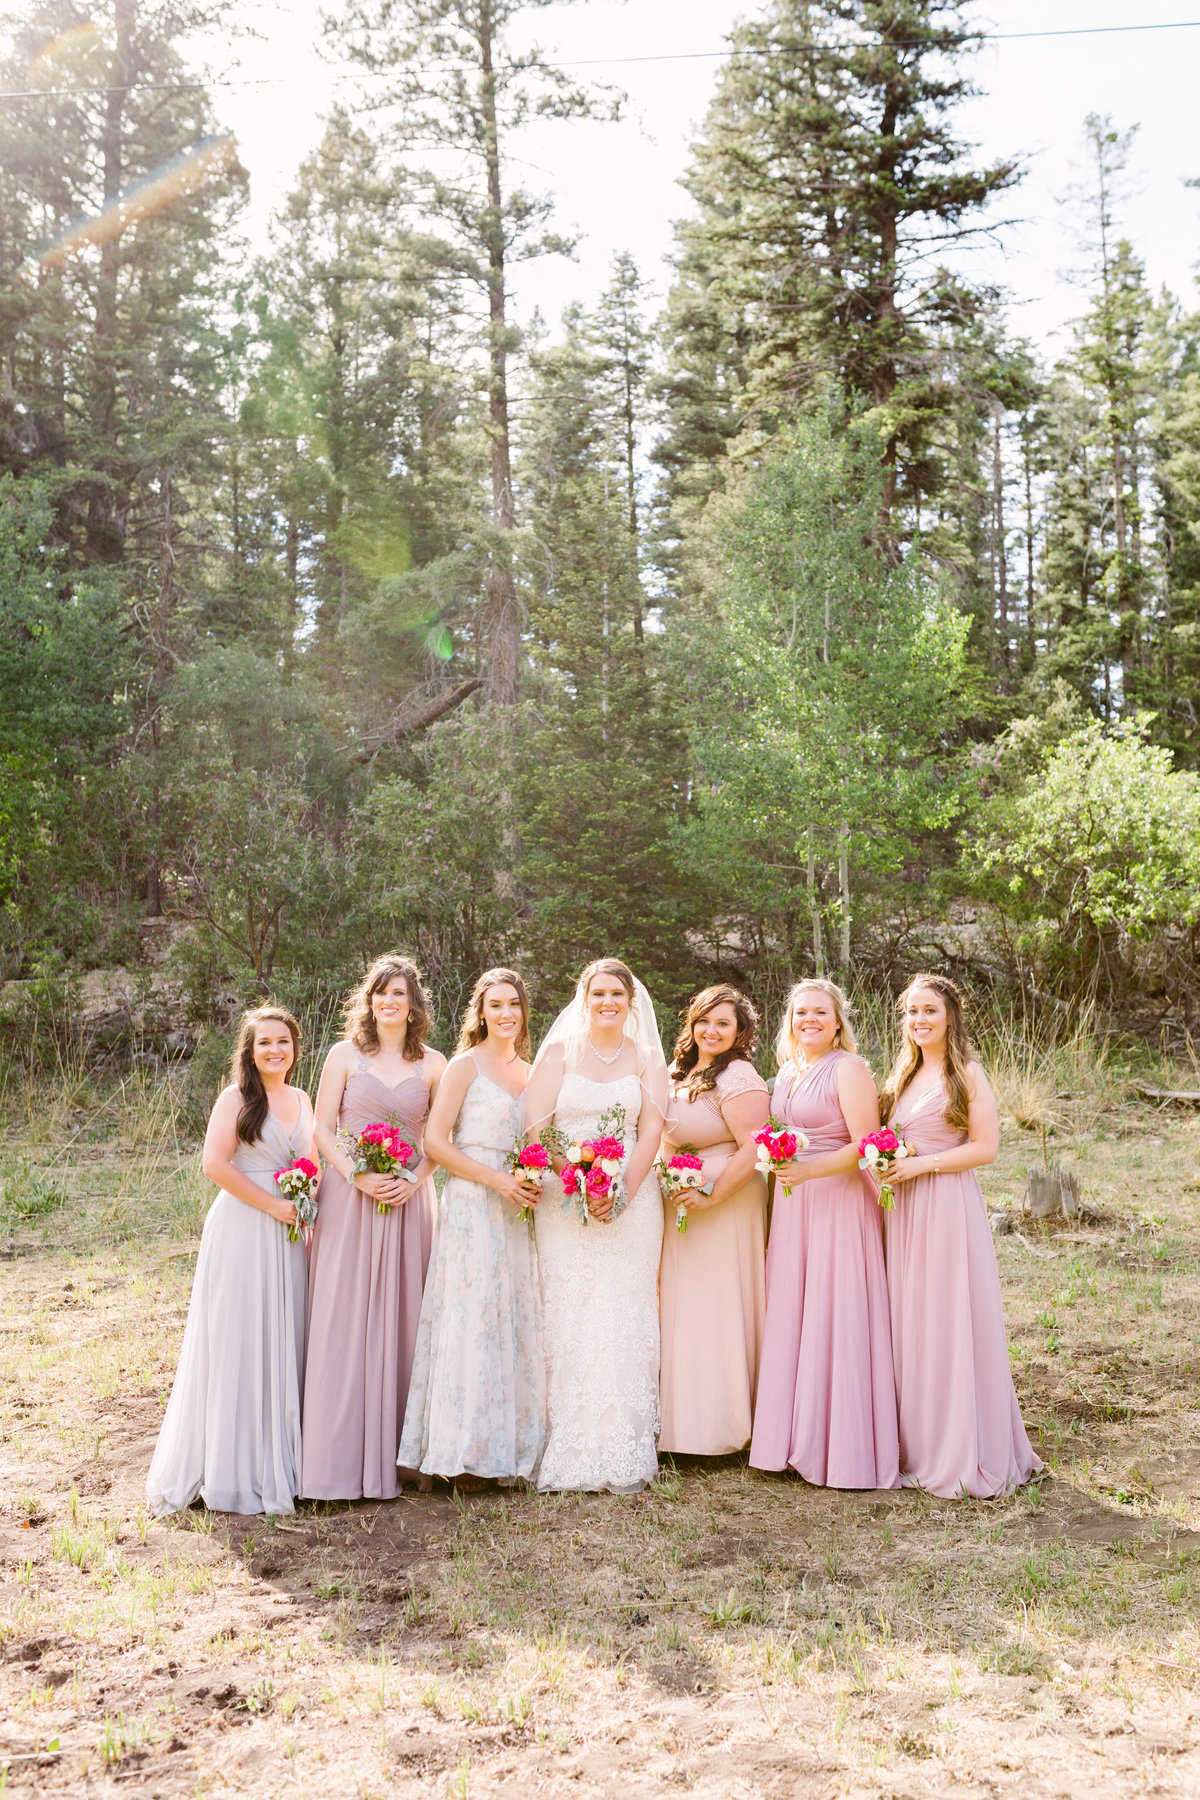 Albuquerque Outdoor Country Wedding Photographer_www.tylerbrooke.com_Kate Kauffman-13